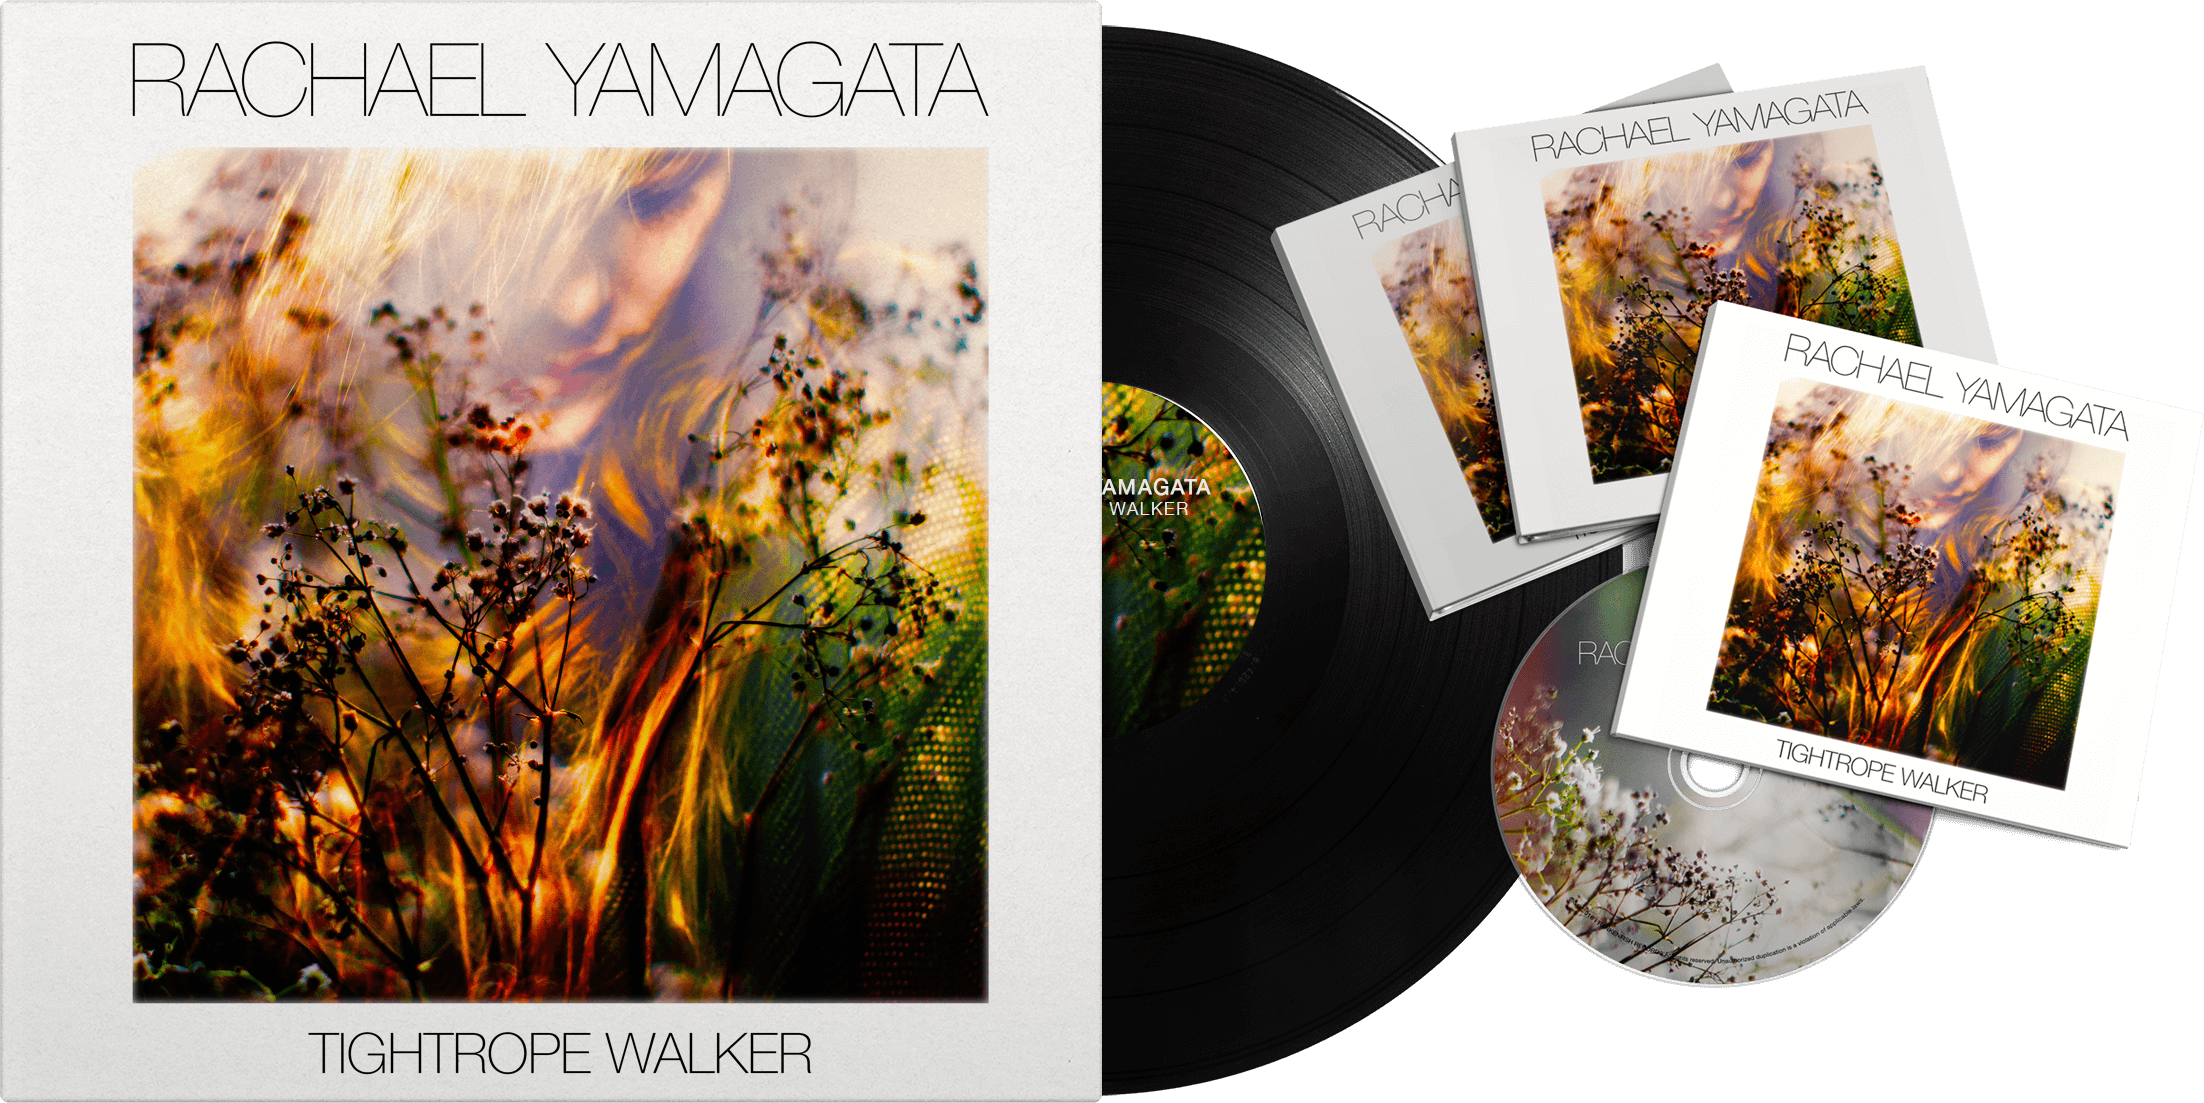 Available on CD, Vinyl, and as a Digital Download